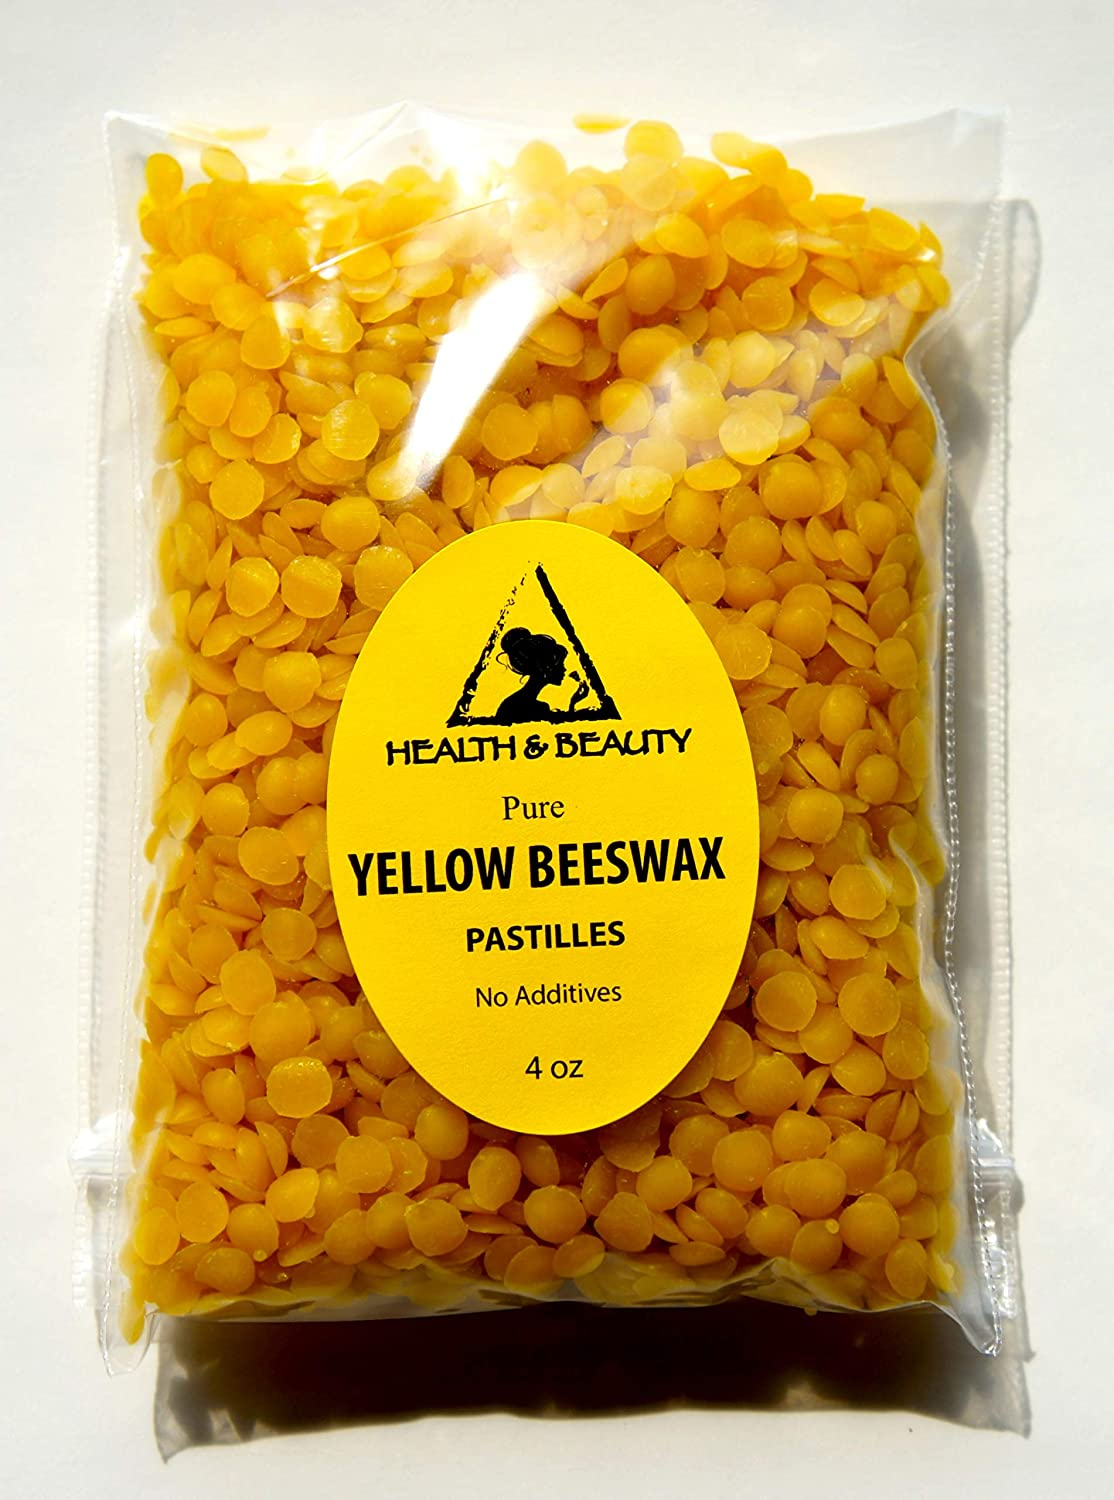 Yellow Beeswax Bees Wax Organic Pastilles Beads Premium Prime Grade A 100% Pure 4 oz, 113 g H&B OILS CENTER Co.